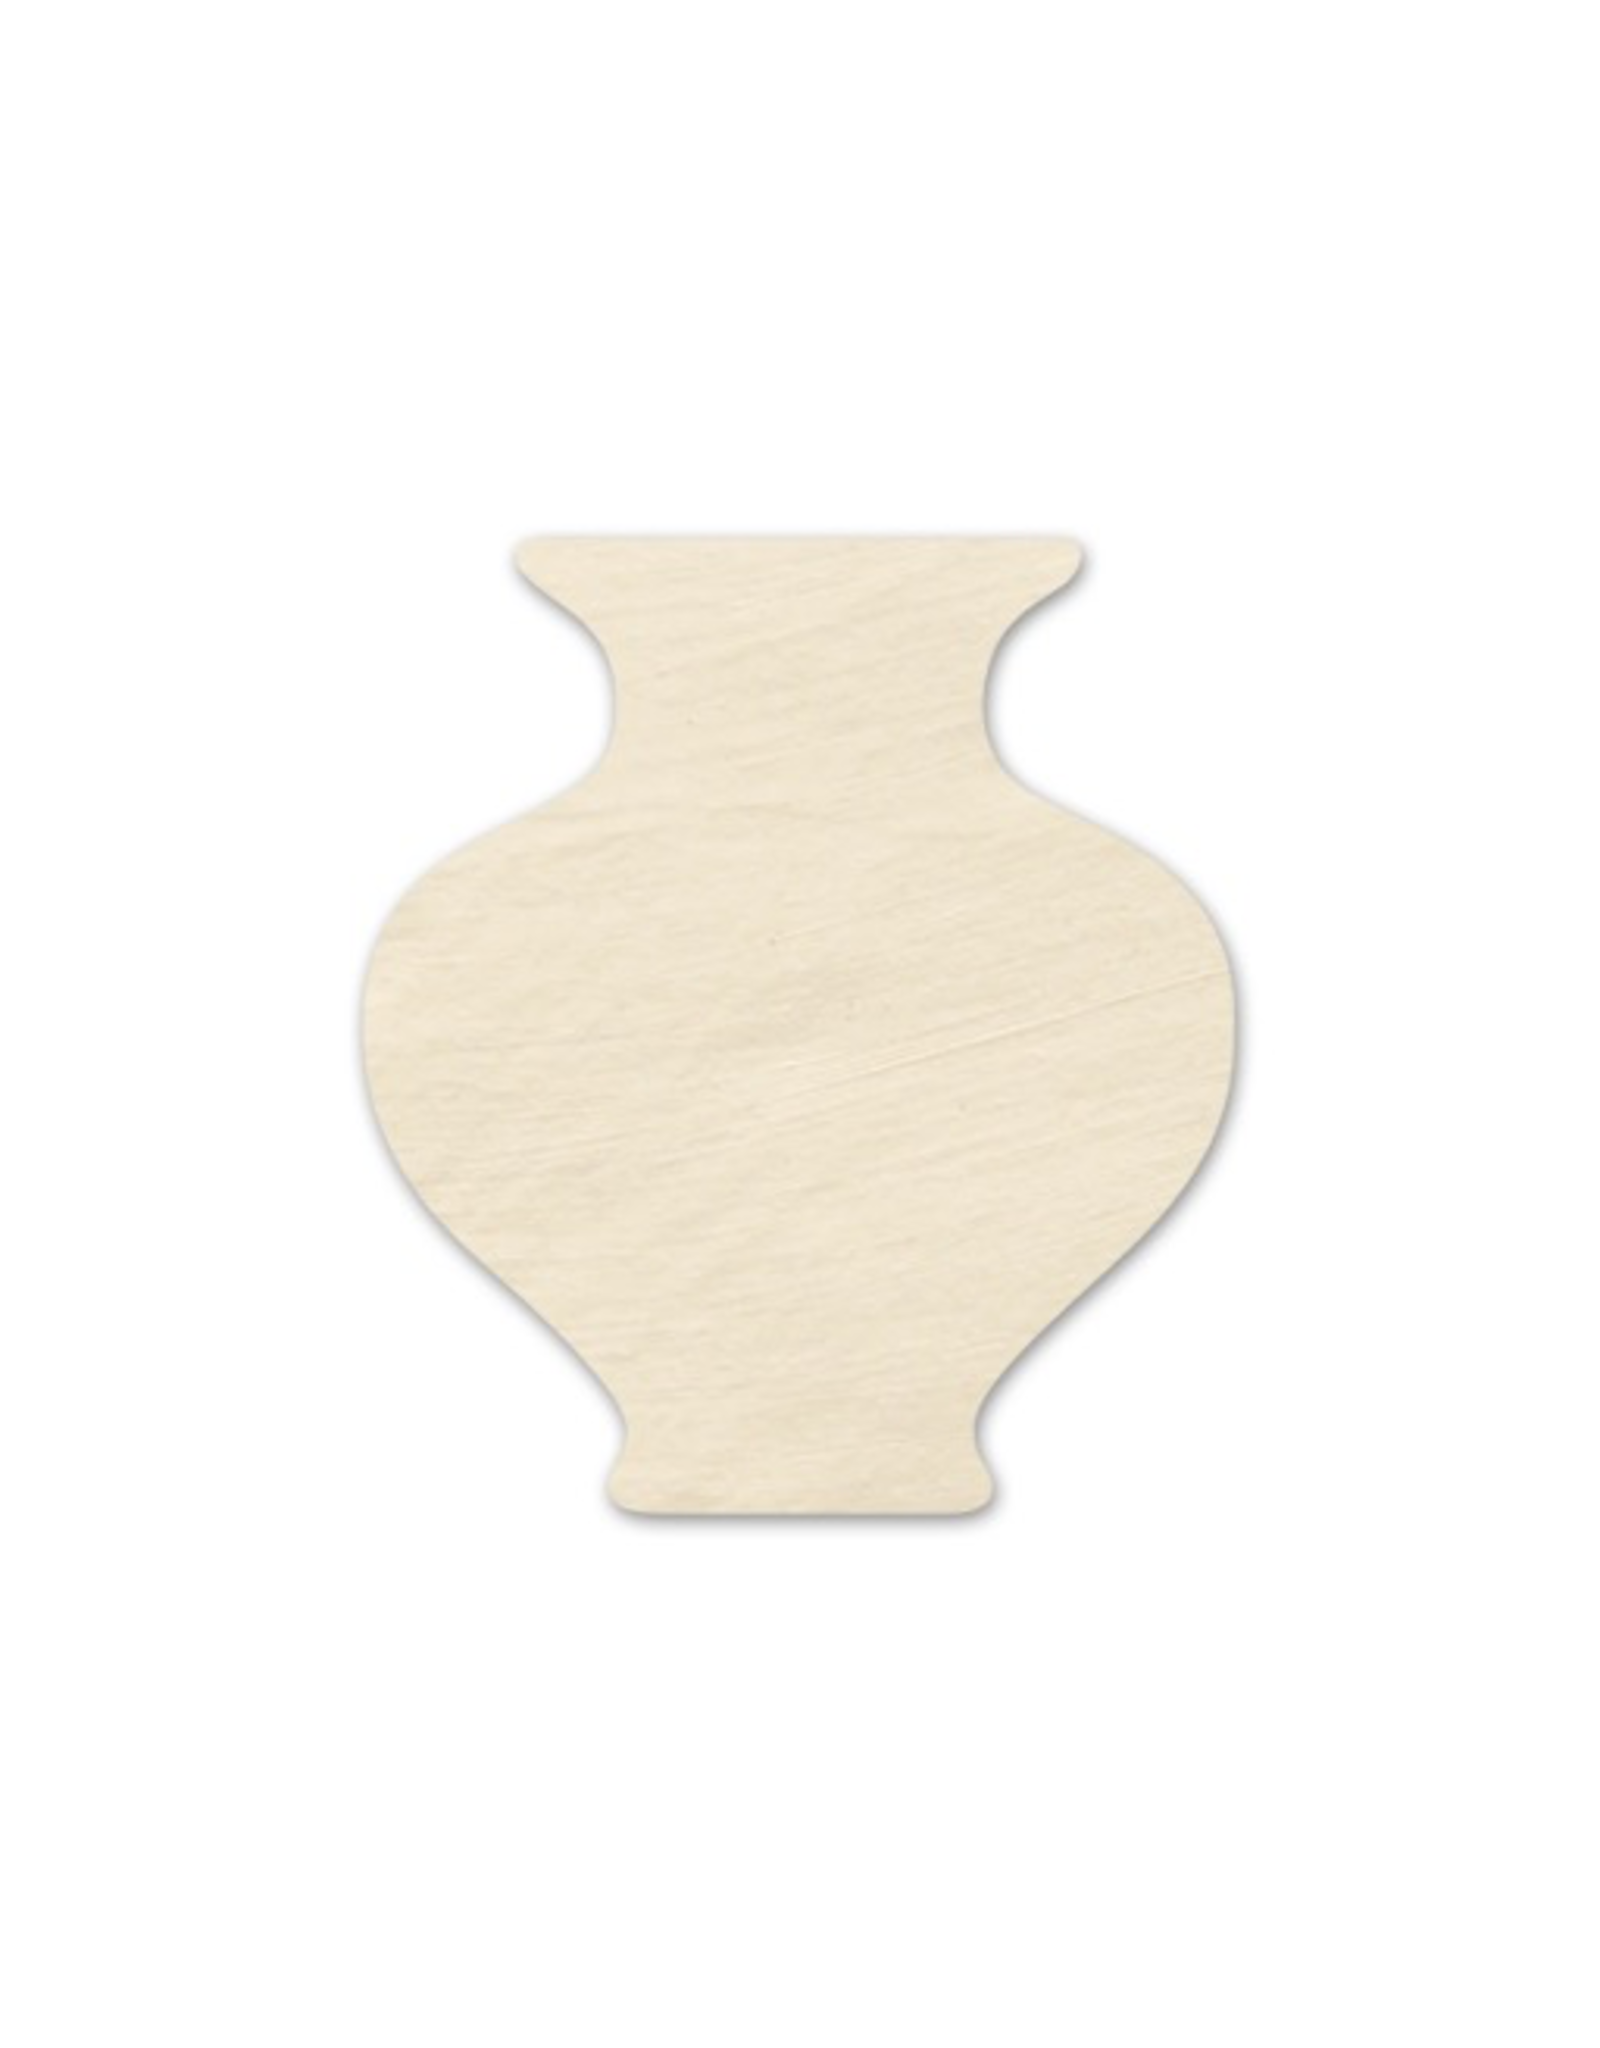 Valentines CWE White Earthenware 1080˚C - 1160˚C